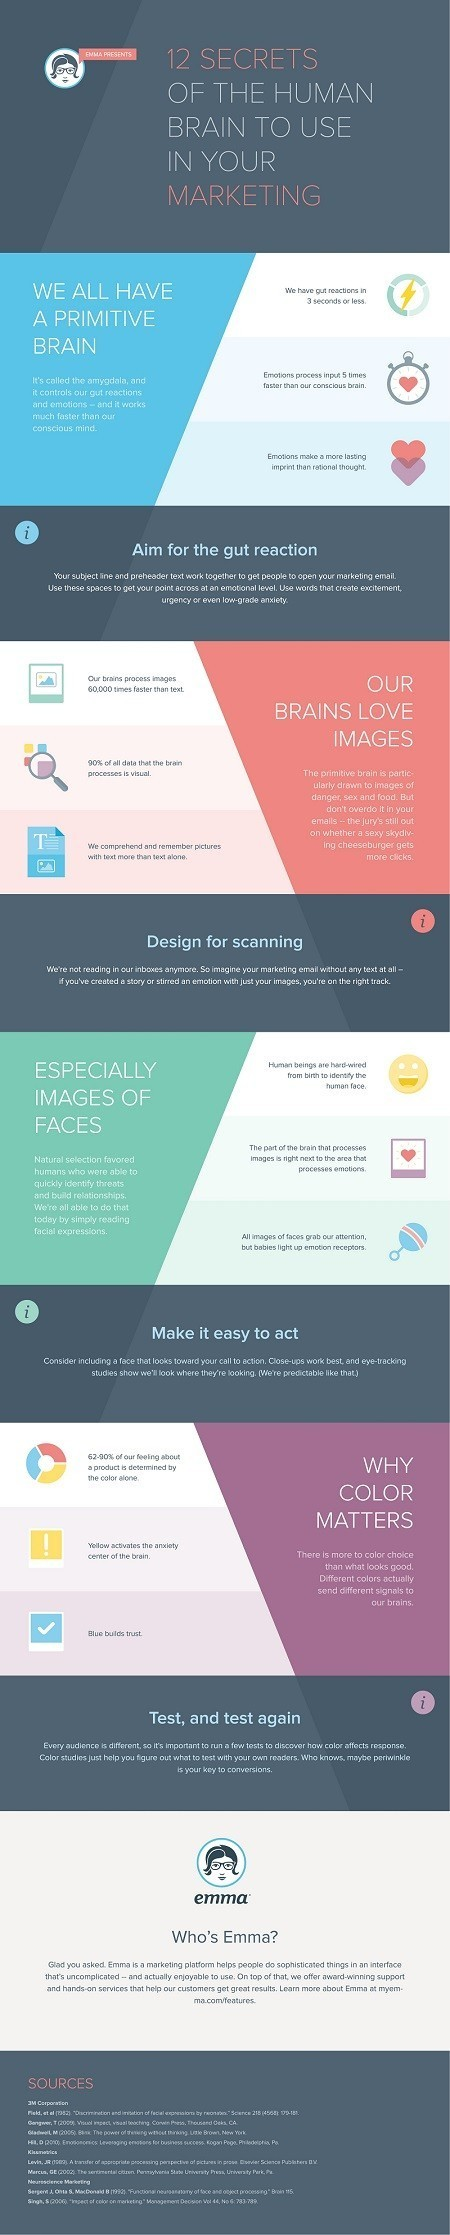 12 Secrets of the Human Brain to Use in Your Marketing [Infographic] | Consumer Behavior in Digital Environments | Scoop.it